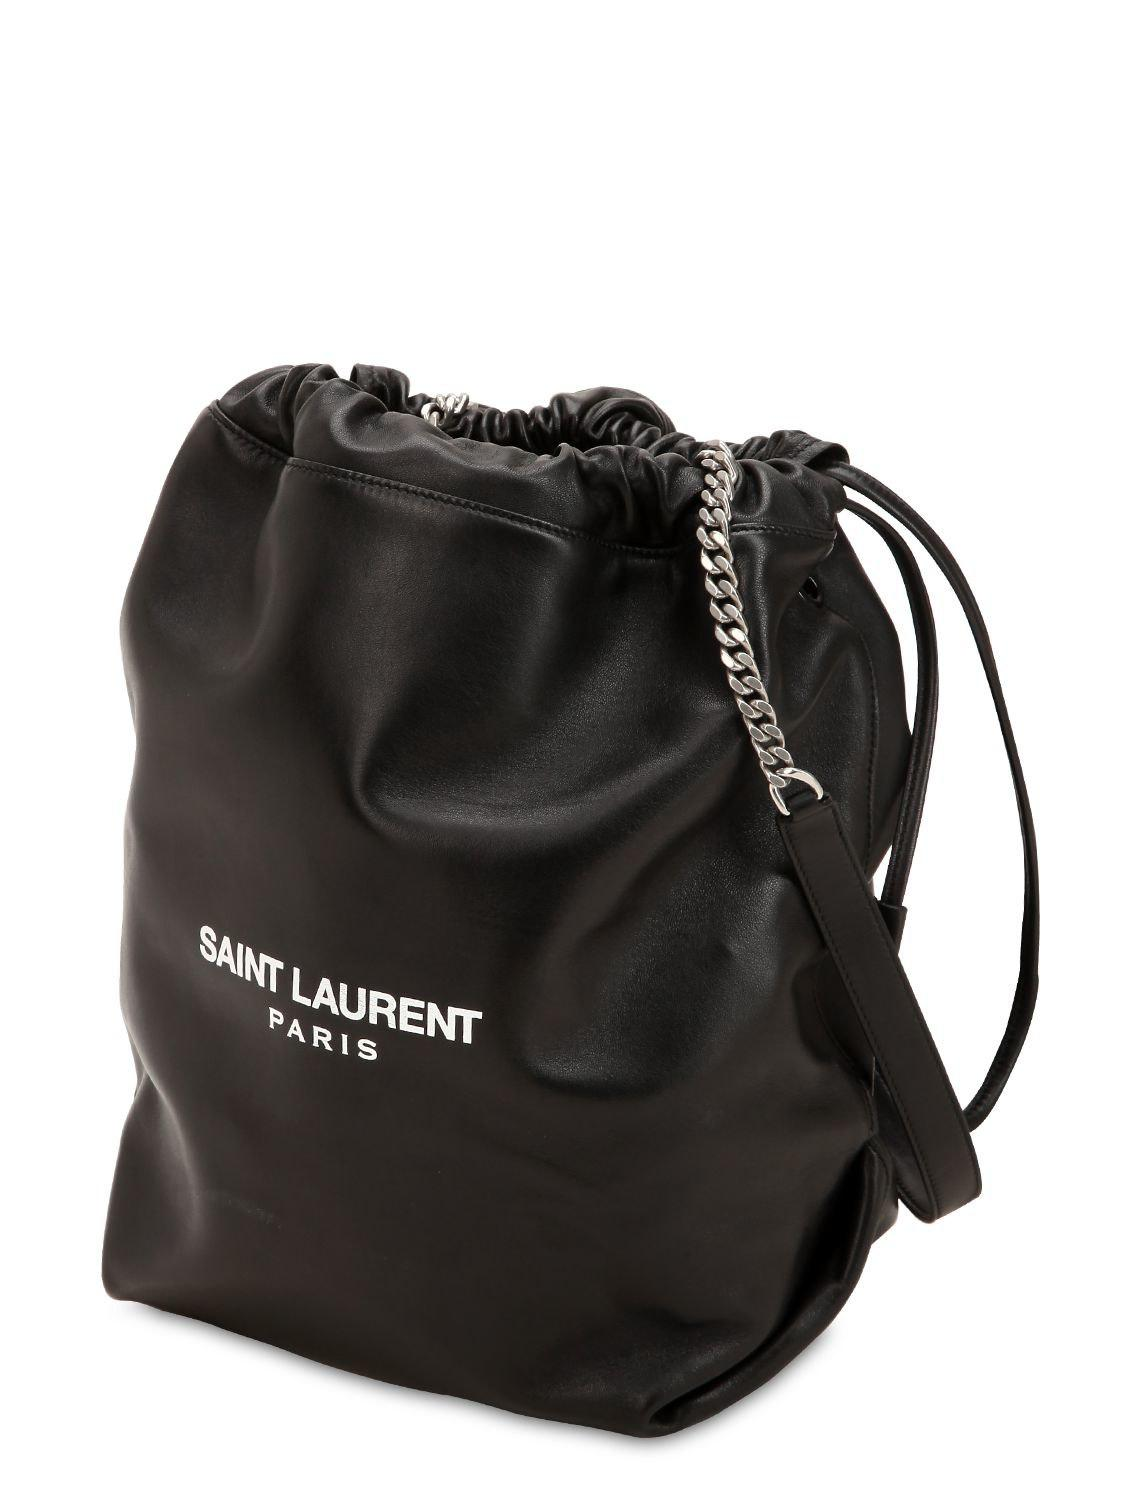 Saint Laurent - Black Teddy Leather Bucket Bag - Lyst. View fullscreen 684b9902db0f5